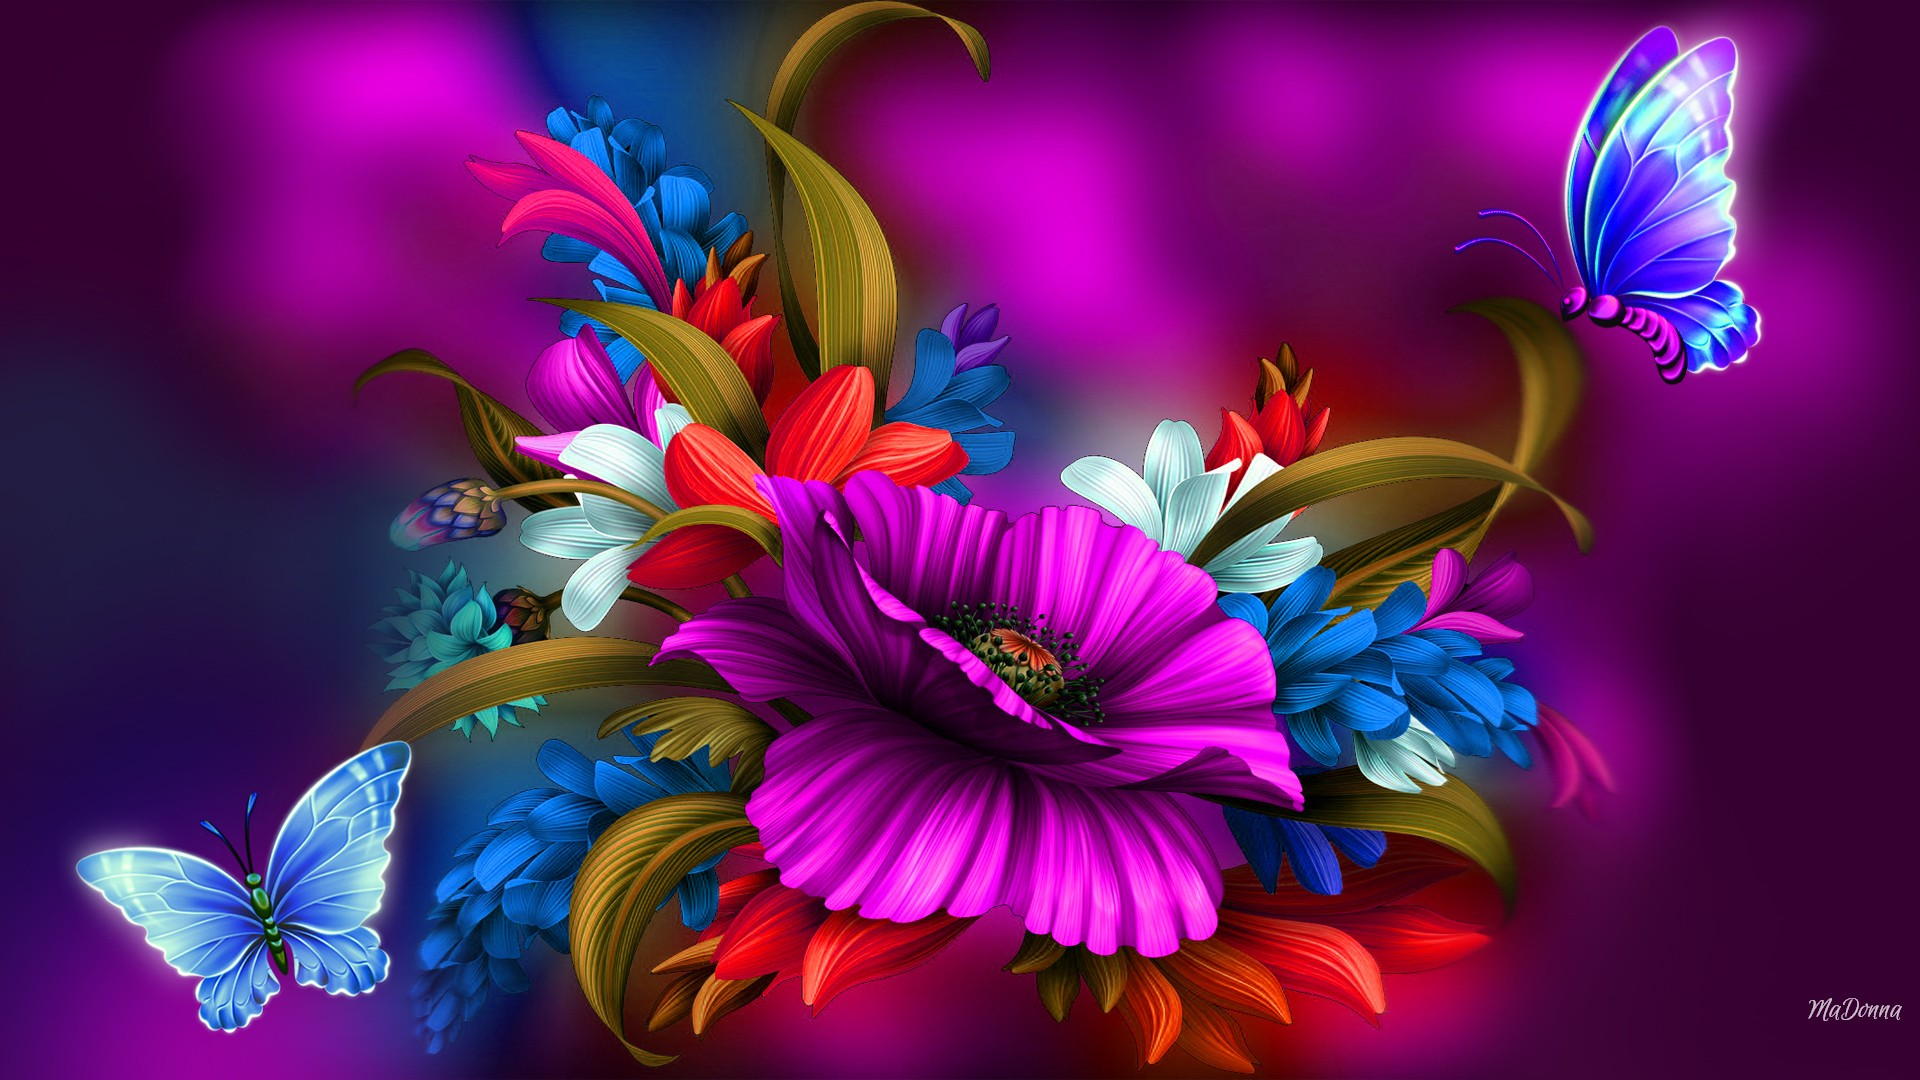 Colorful Flower And Butterfly Abstract HD Wallpaper